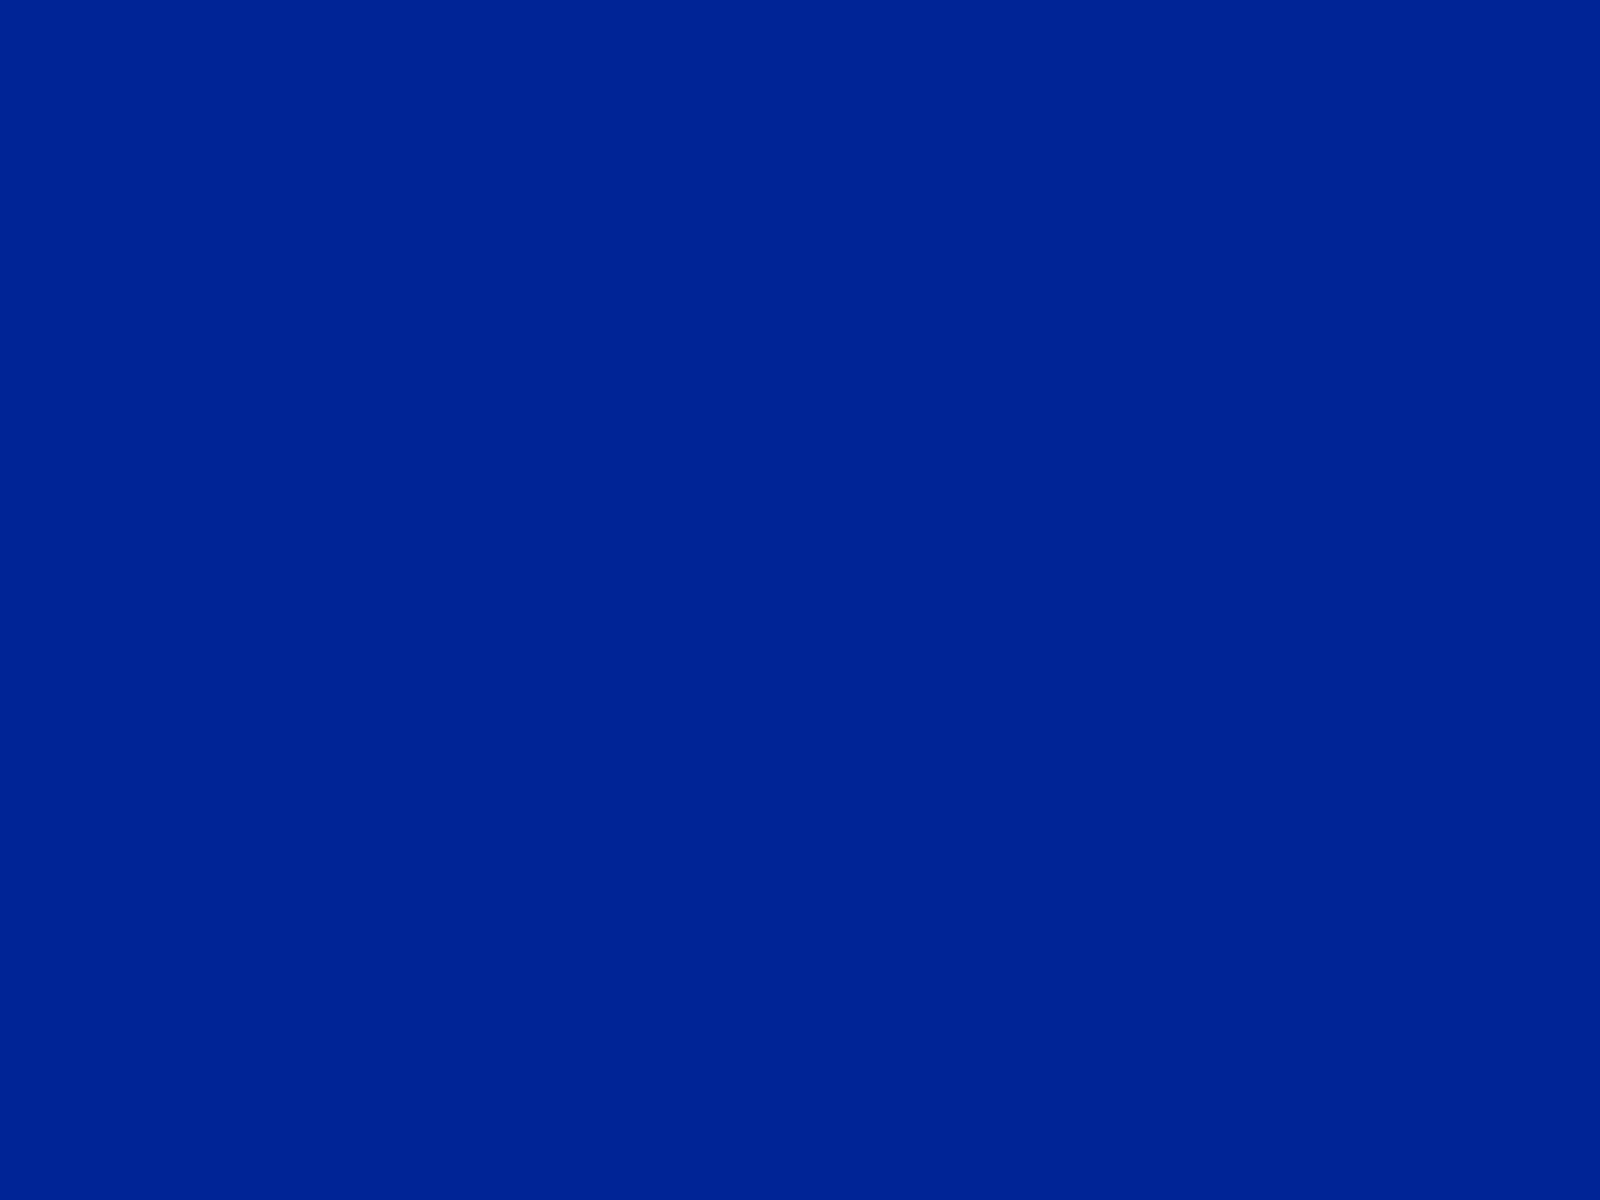 1600x1200 Imperial Blue Solid Color Background